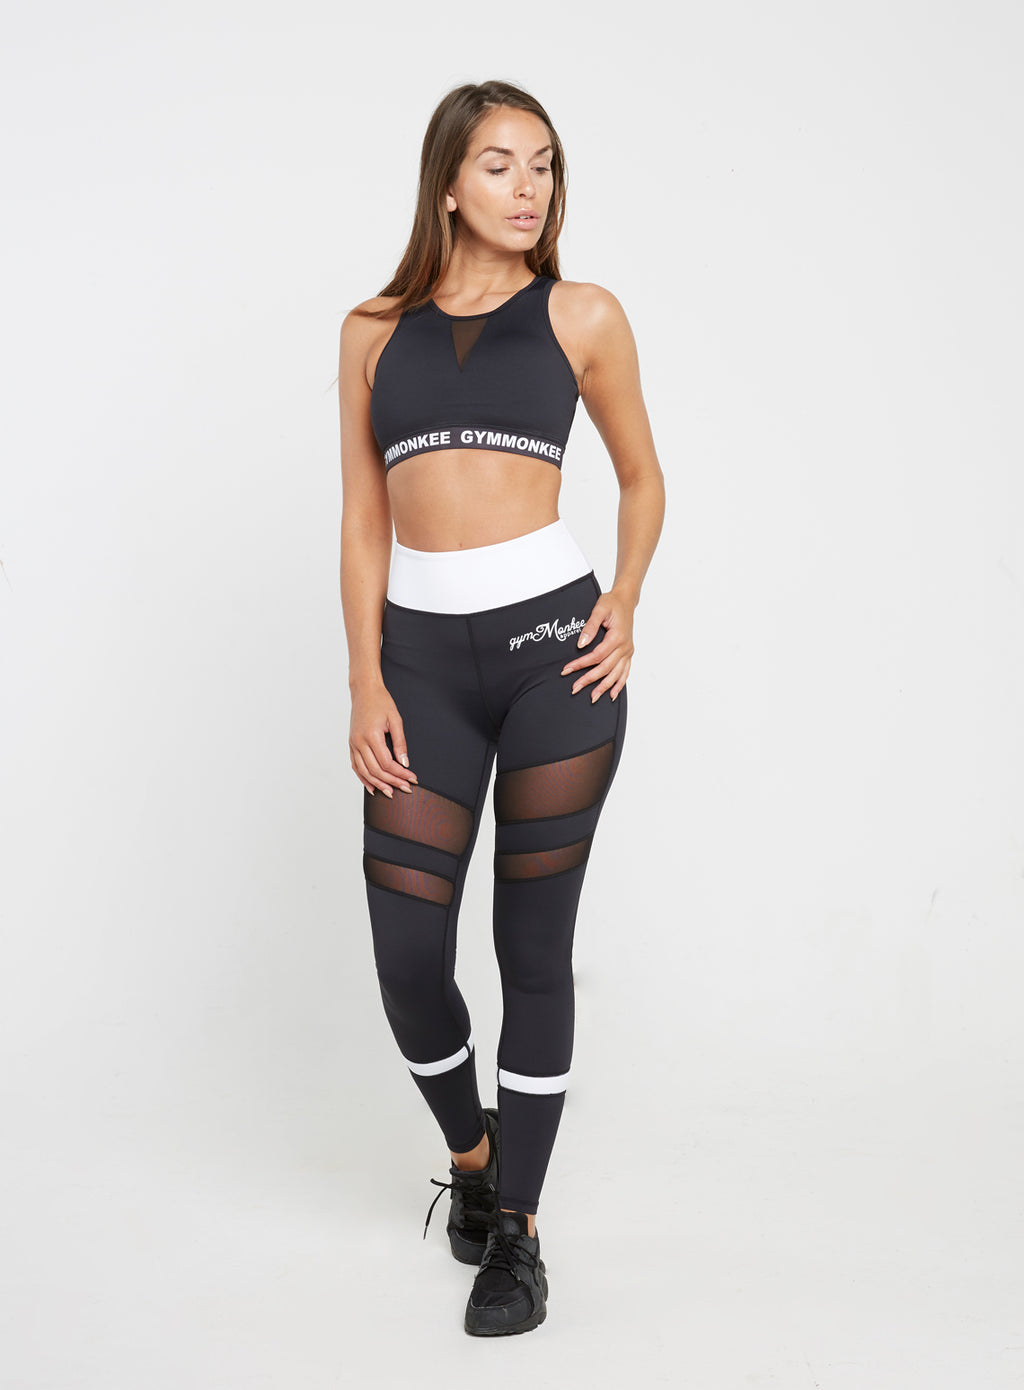 Gym  Monkee - Ladies Black and White Leggings FRONT FULL